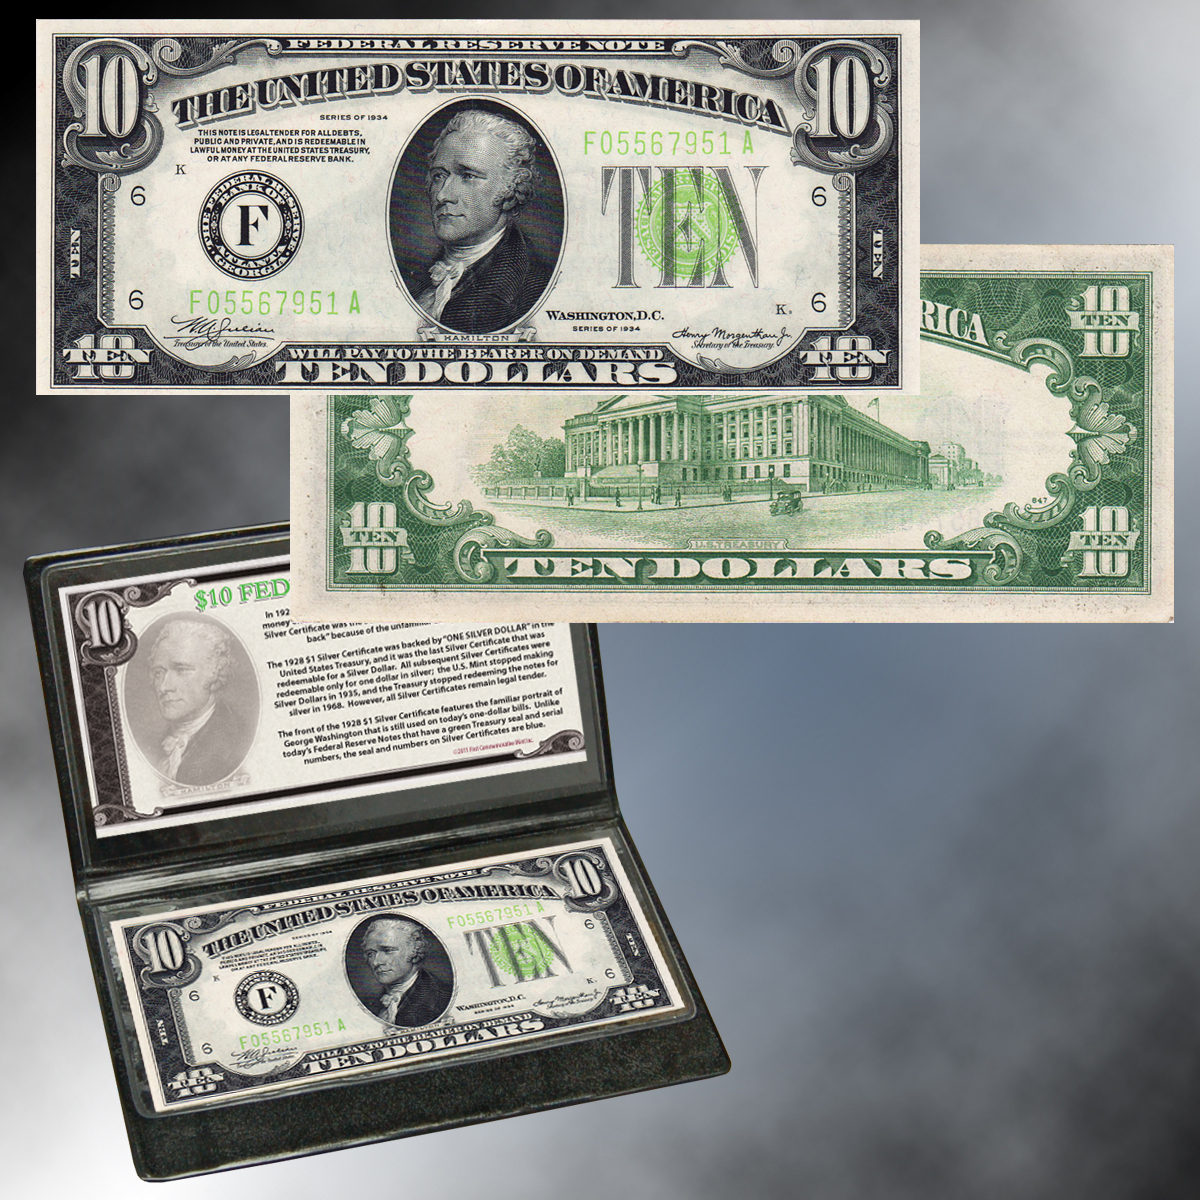 $10 Federal Reserve Note (1934 or Earlier)